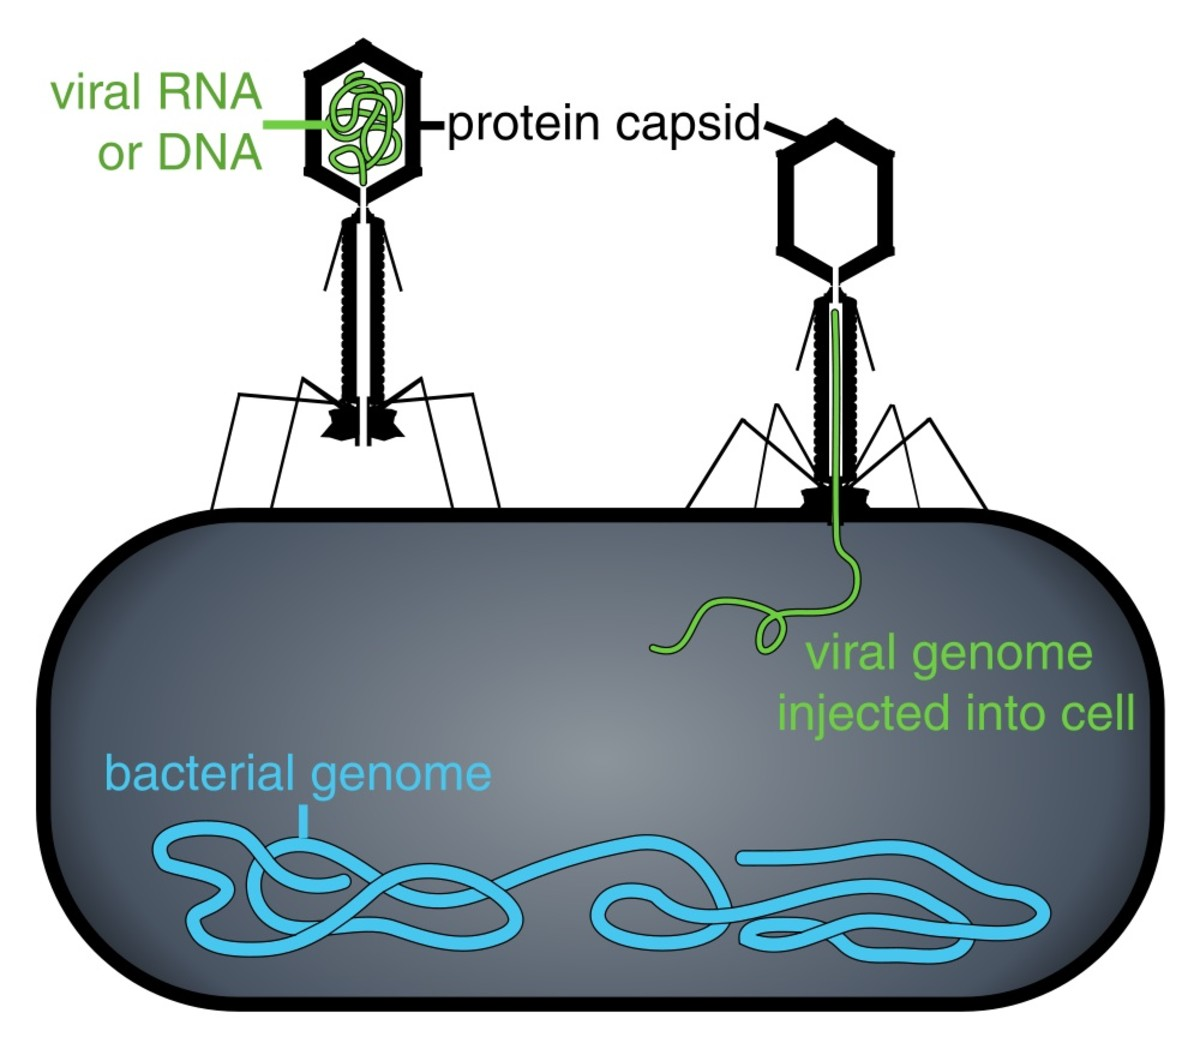 A phage injecting its genome (a piece of DNA or RNA) into a bacterial cell.